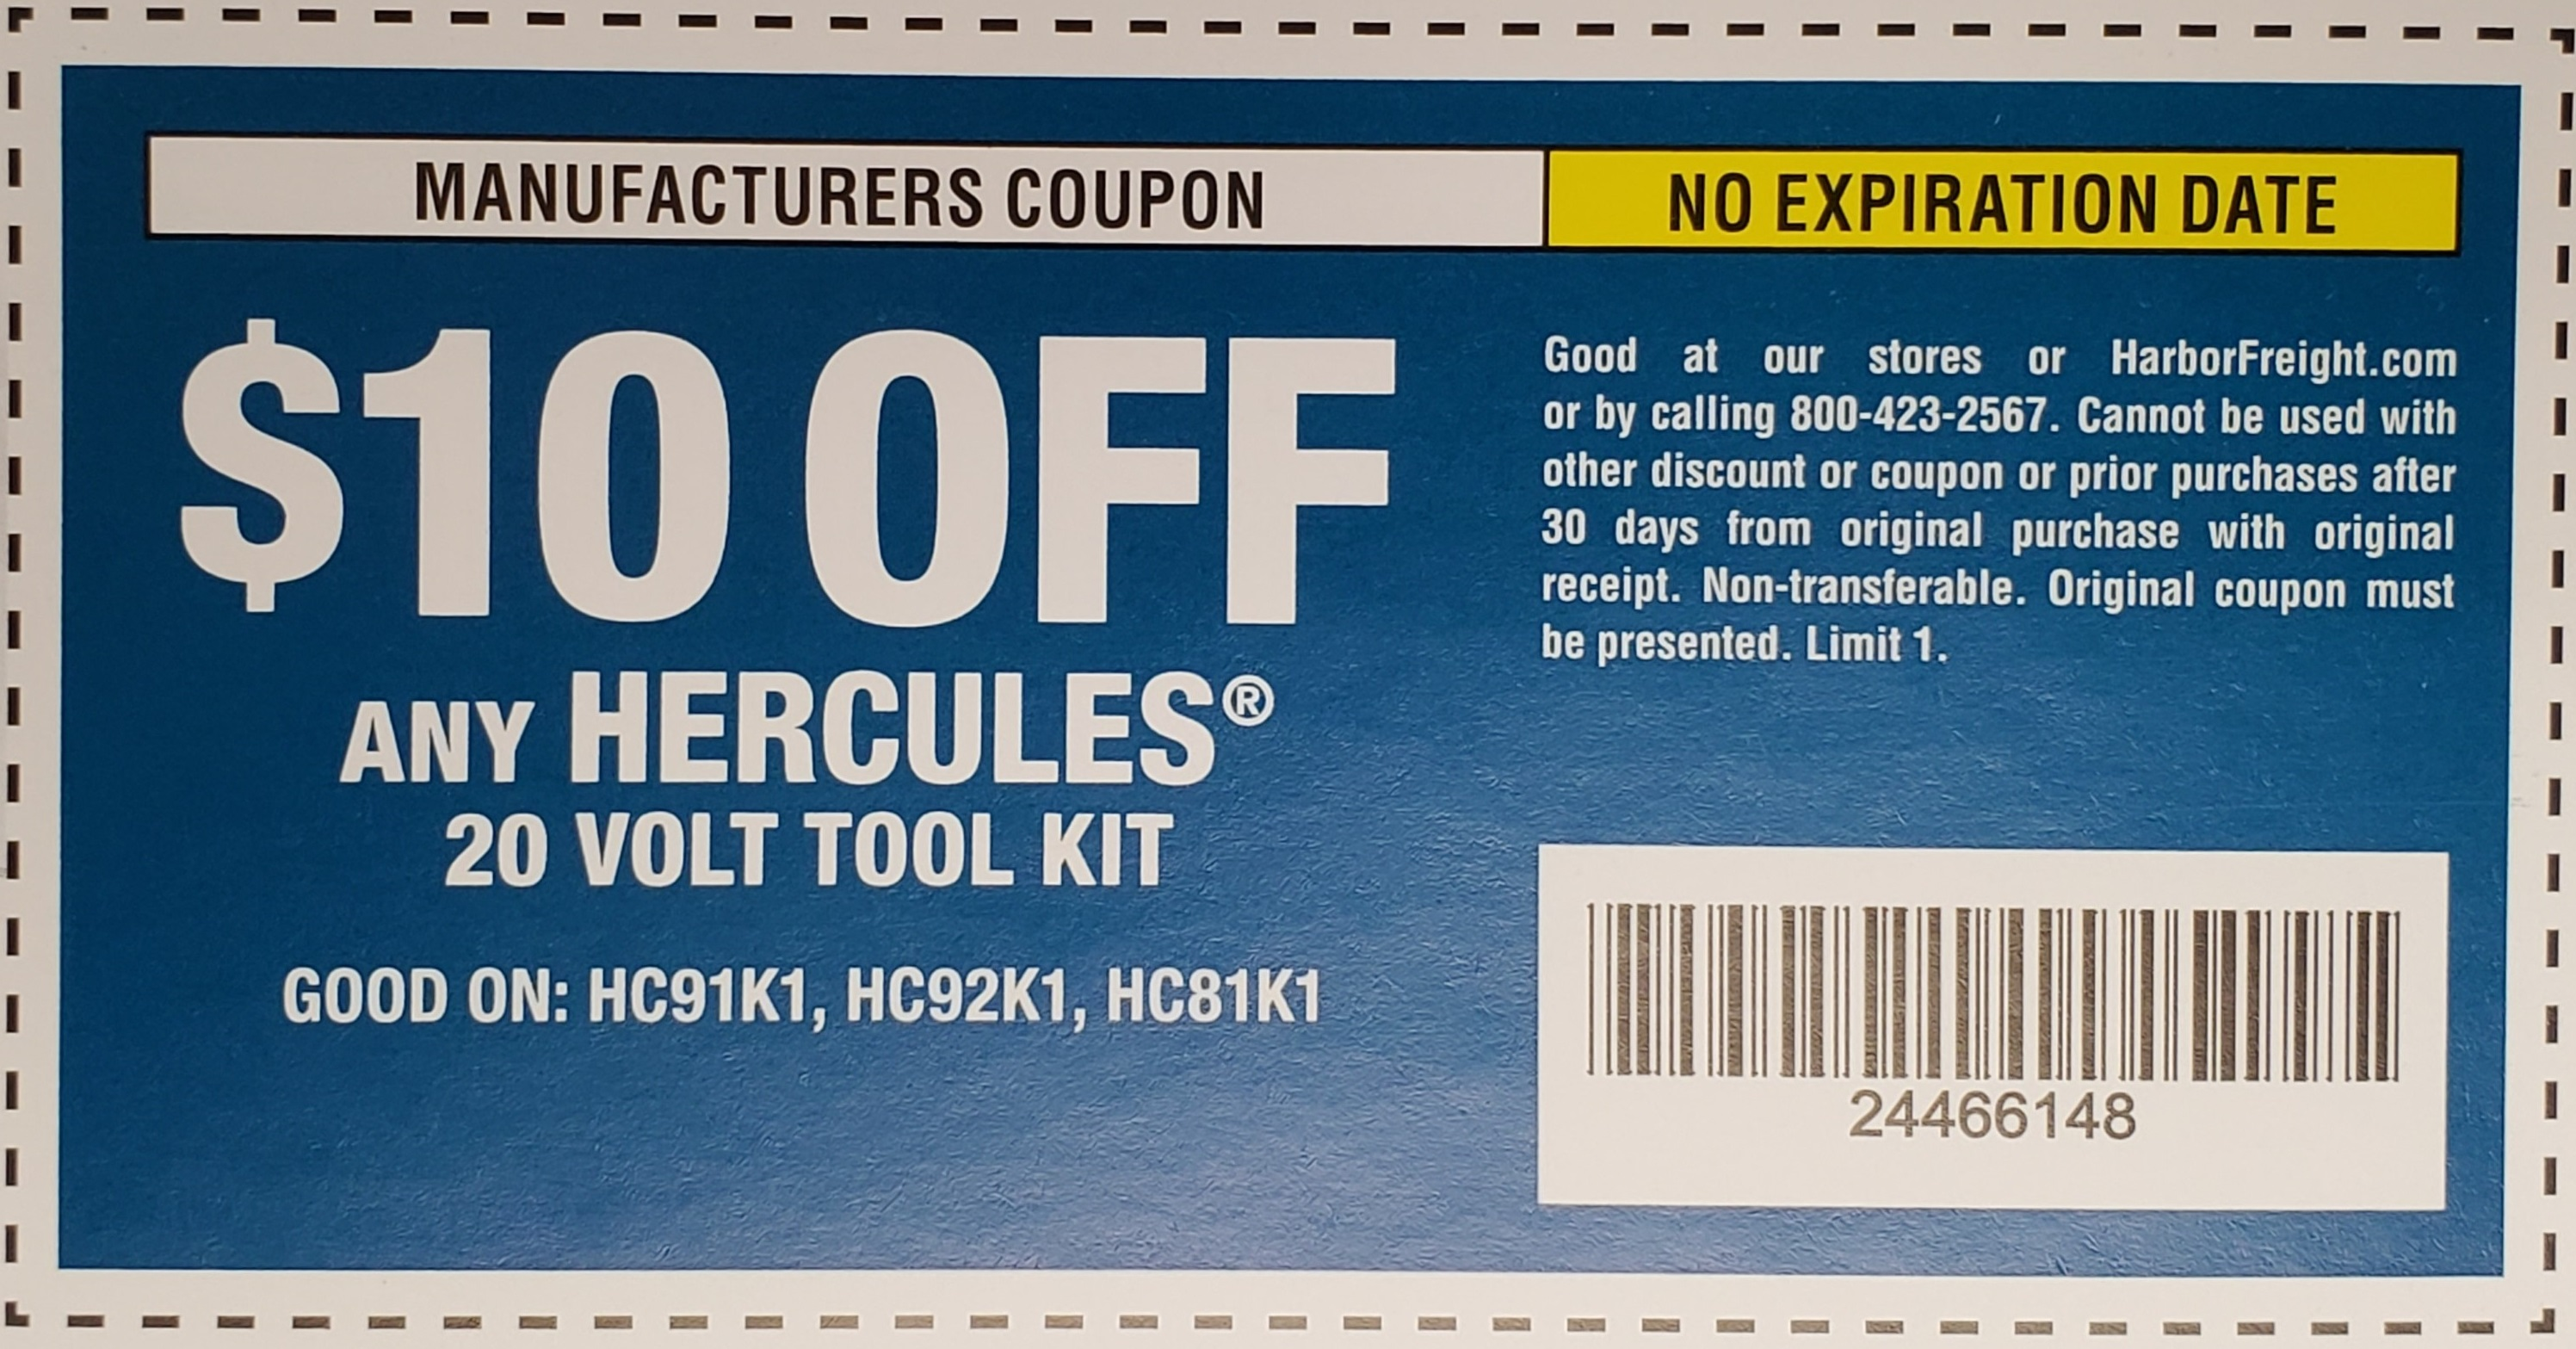 www.hfqpdb.com - HERCULES 20V TOOL KIT Lot No. HC91K1